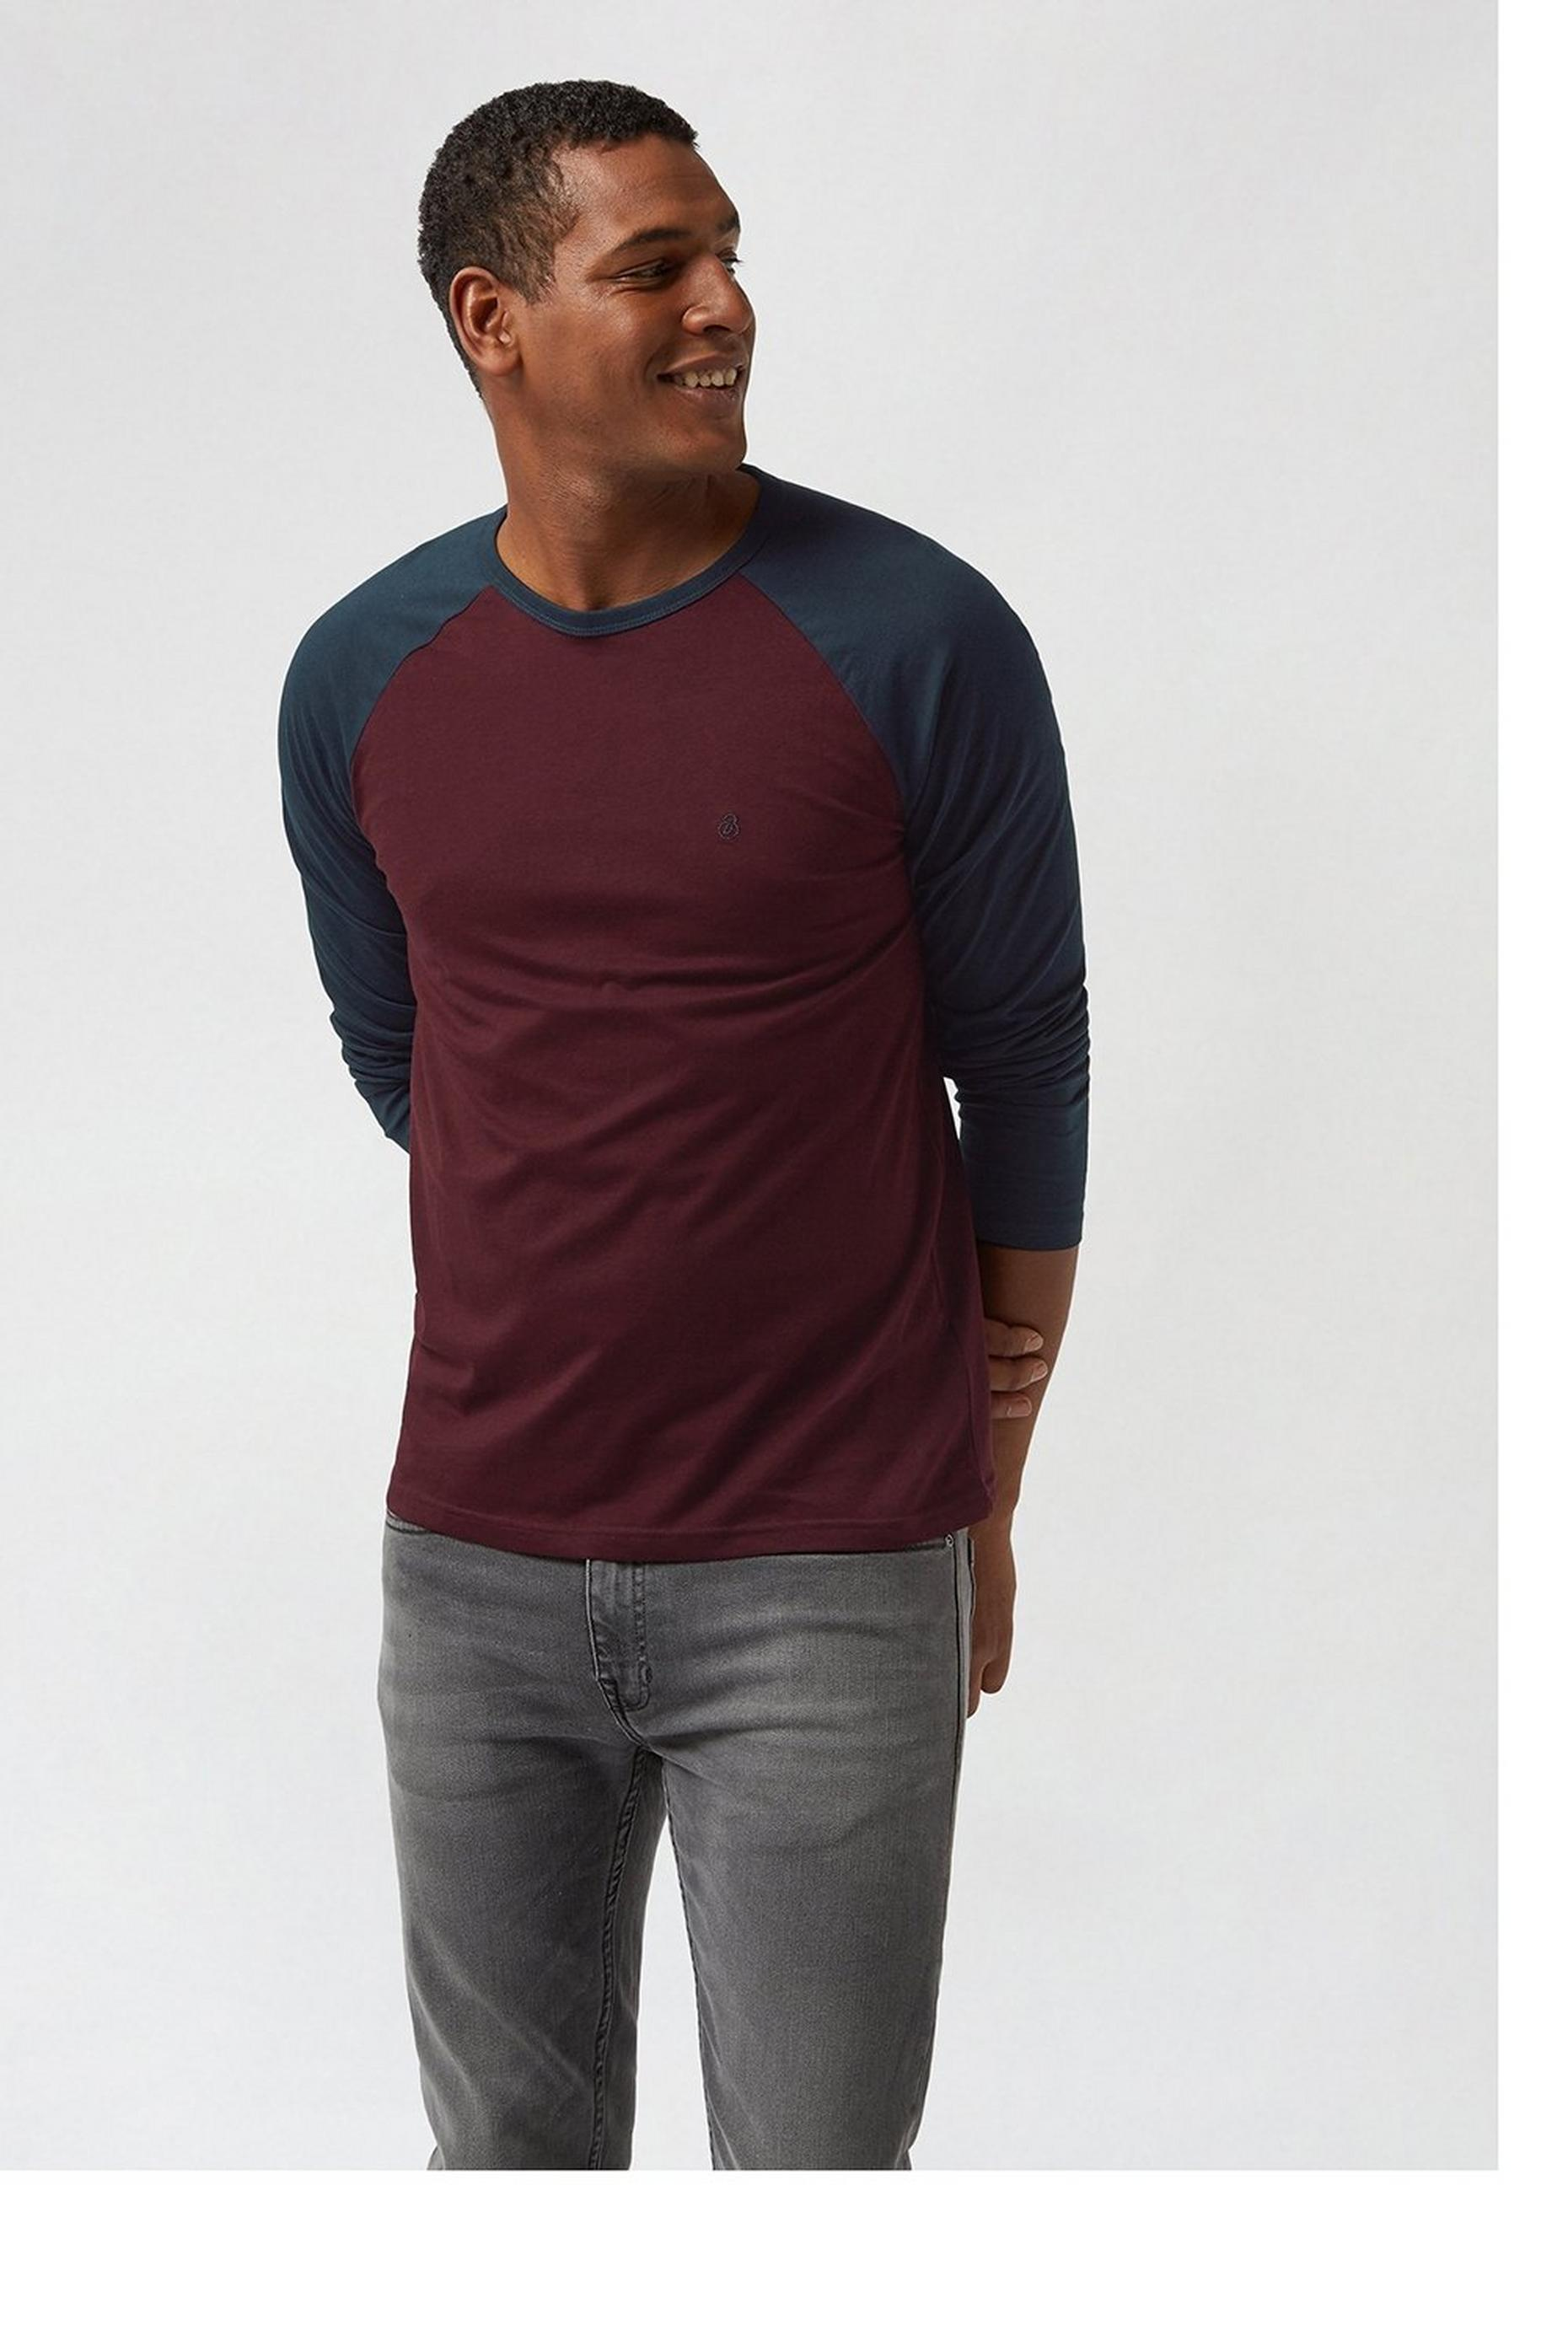 Long Sleeve Burgundy Raglan Tshirt